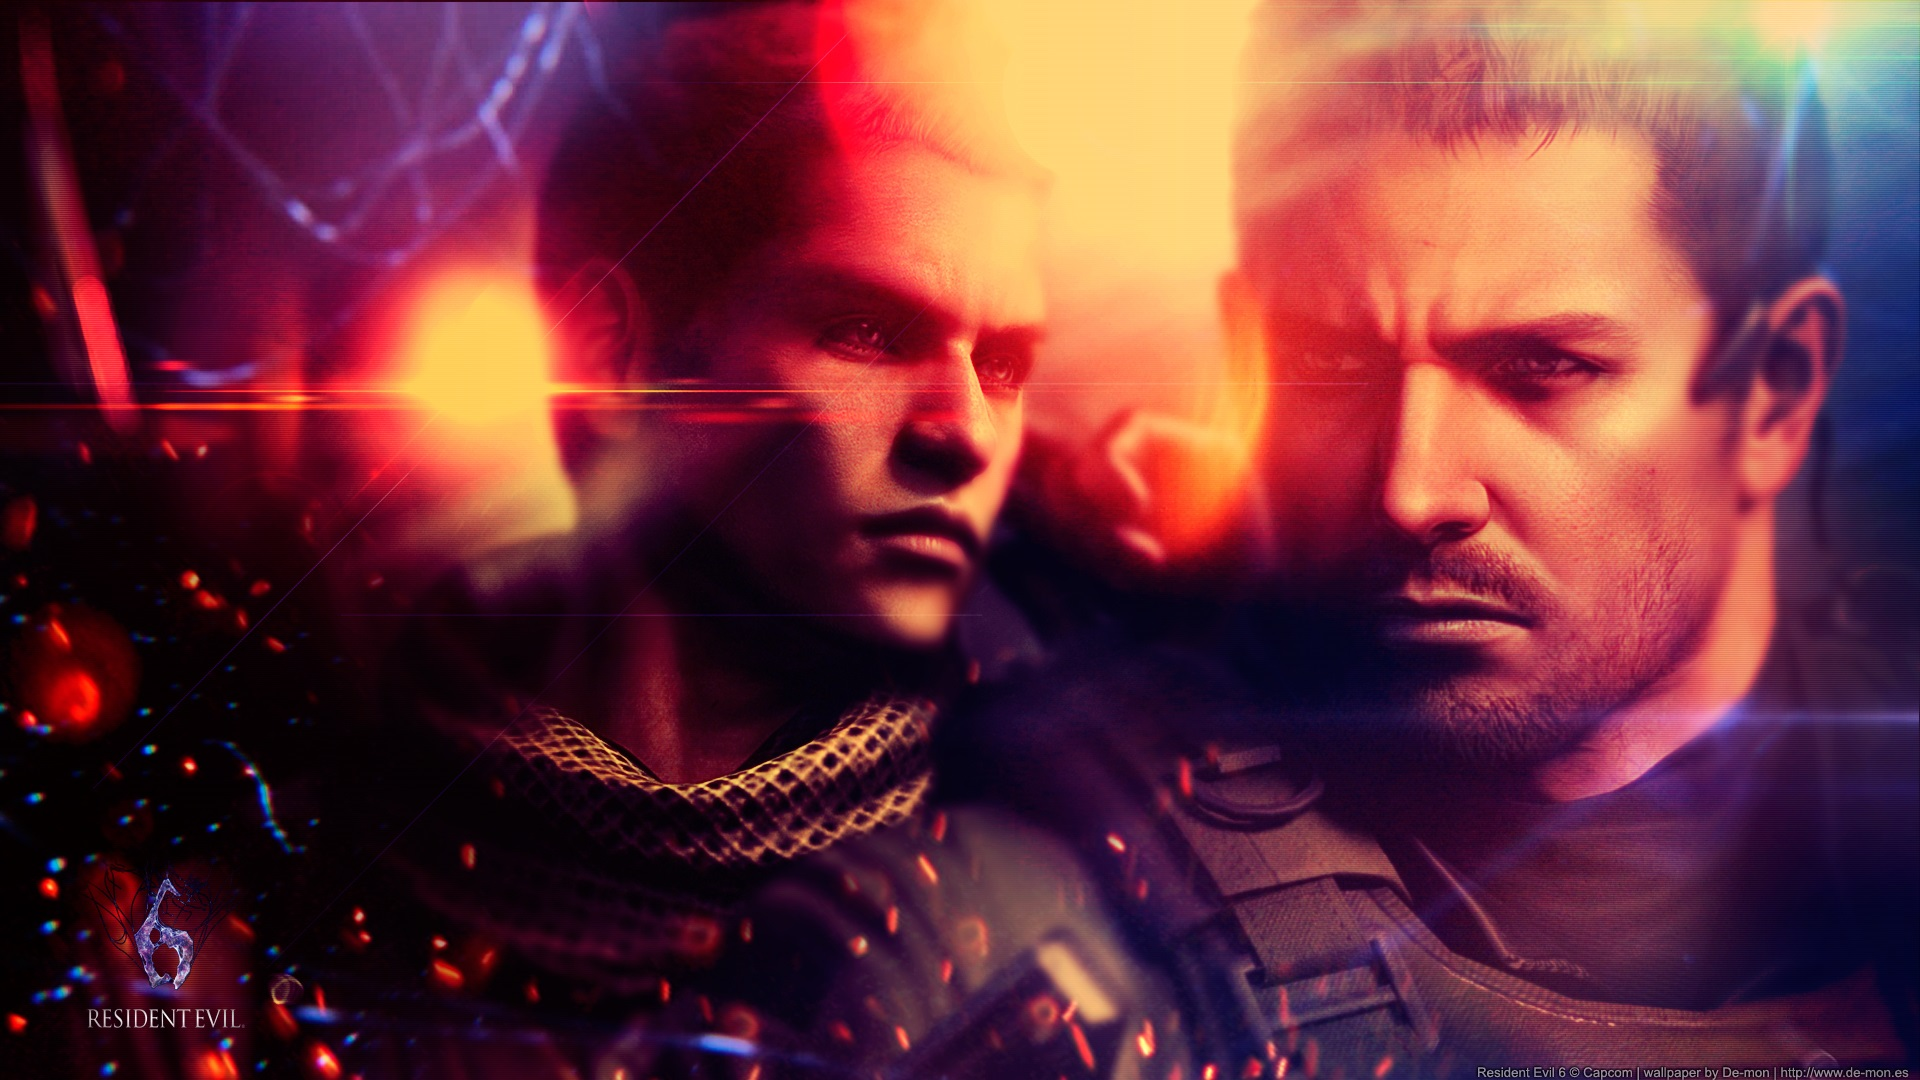 Wallpaper Resident Evil 6 Two Soldiers 1920x1080 Full Hd 2k